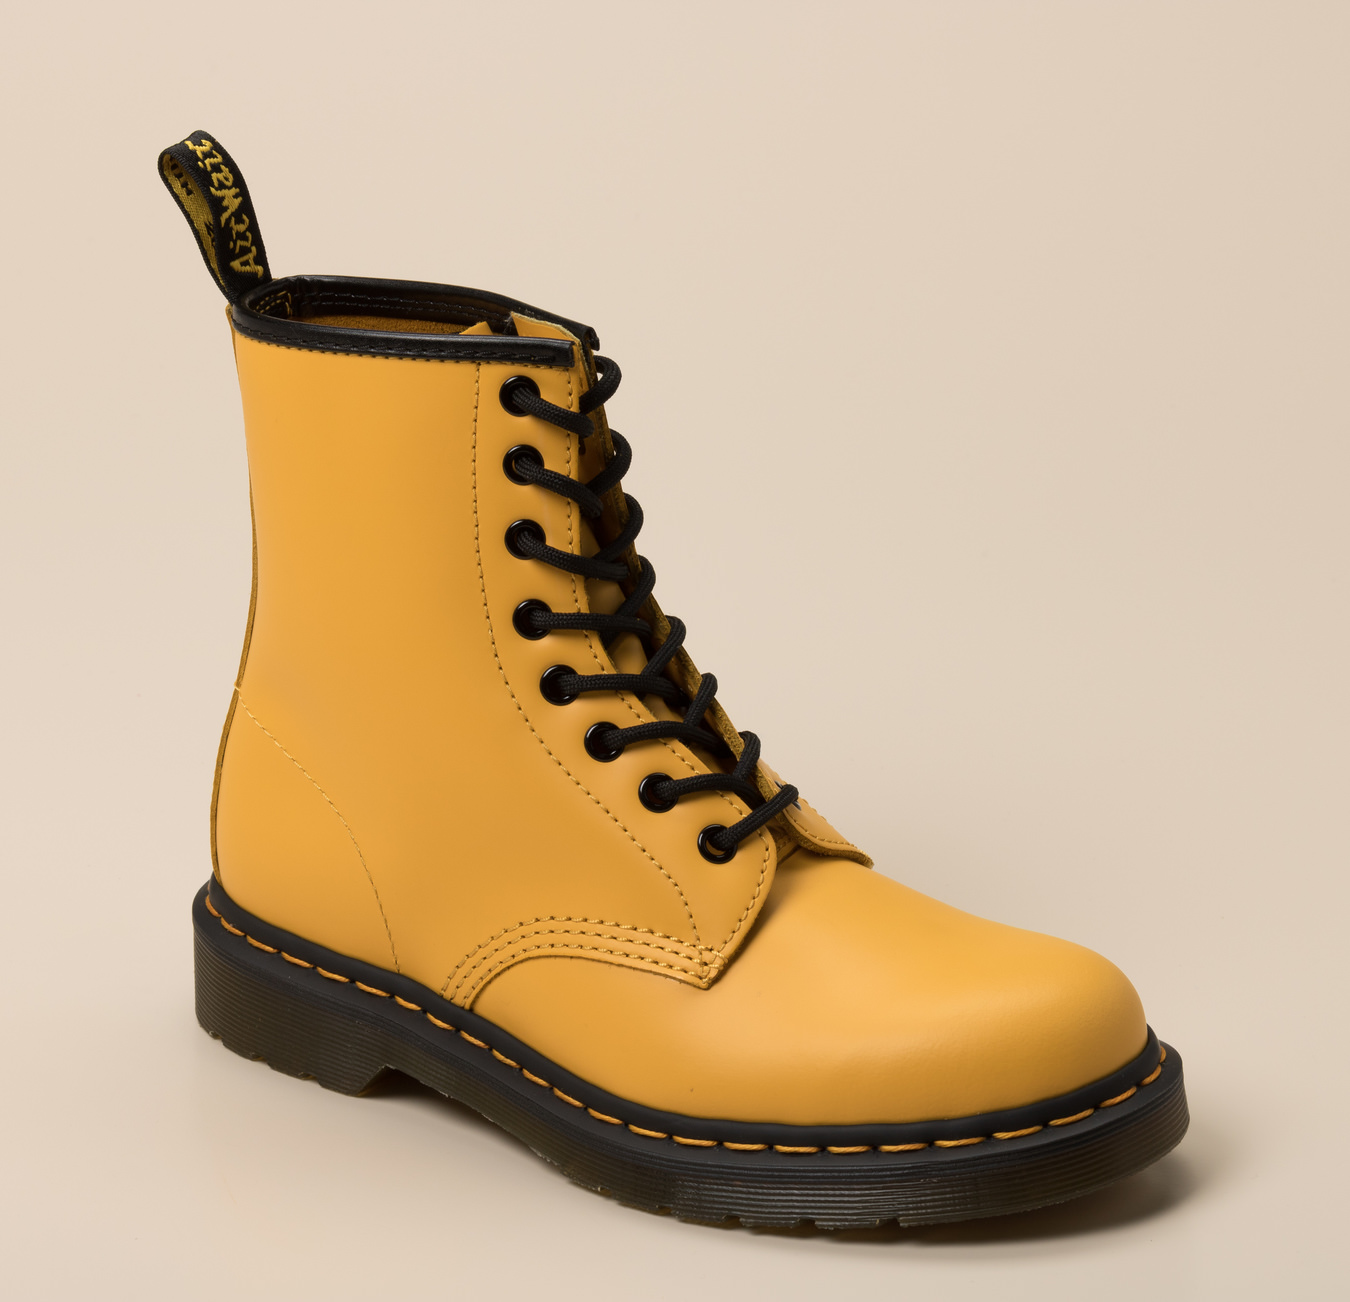 official shop in stock best Stiefelette